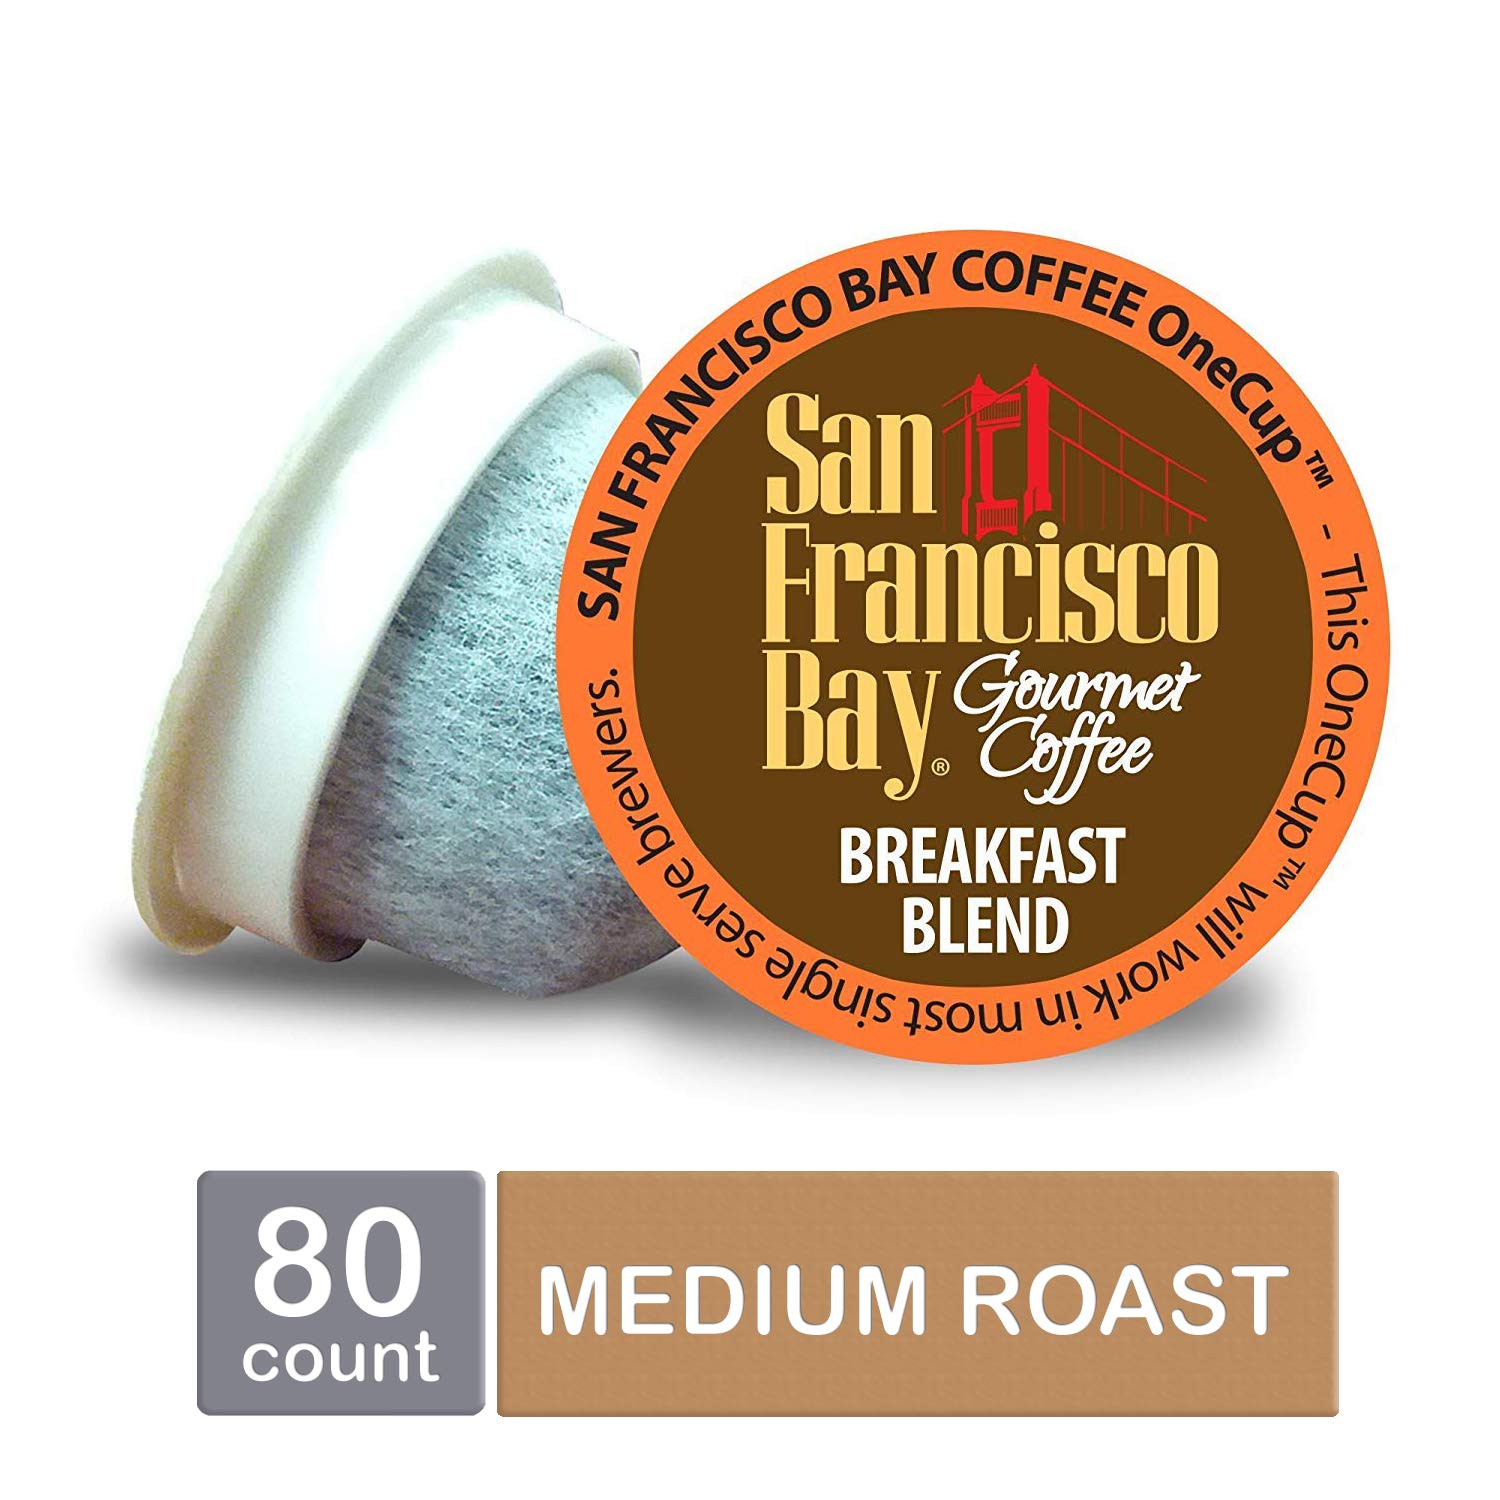 San Francisco Bay OneCup, Breakfast Blend, Single Serve Coffee K-Cup Pods (80 Count) Keurig Compatible by SAN FRANCISCO BAY